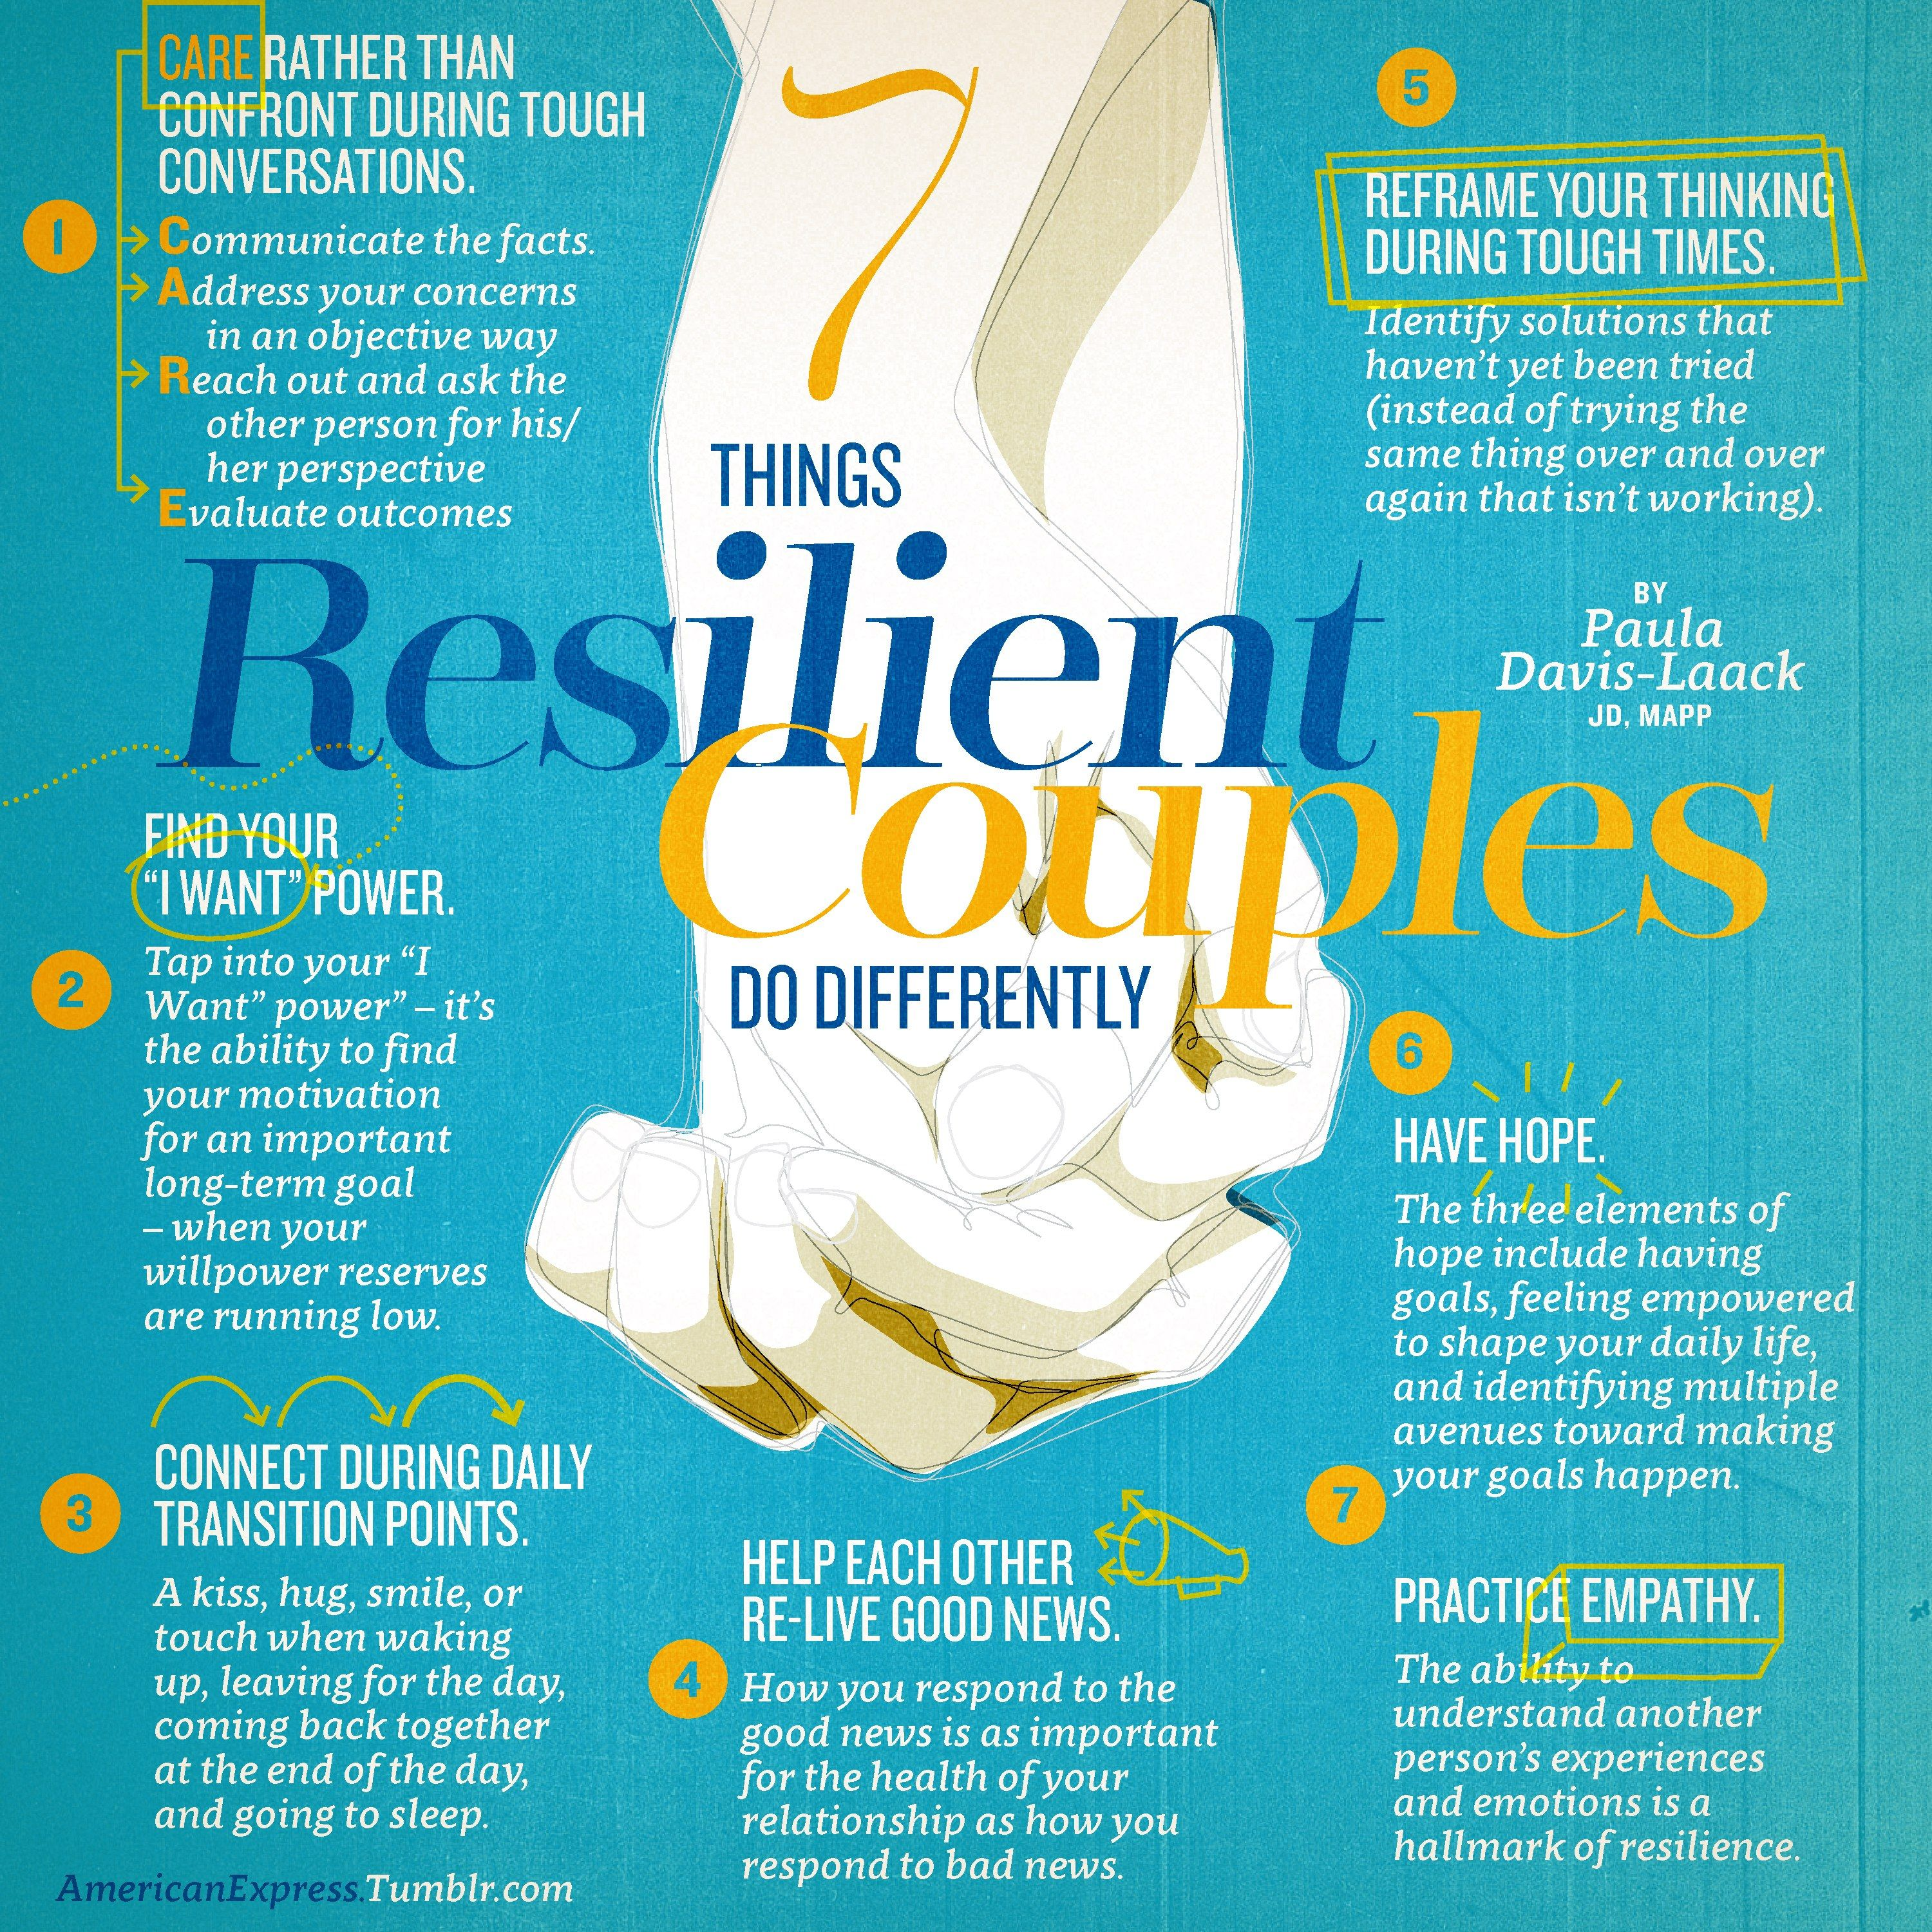 7 Things Resilient Couples Do Differently